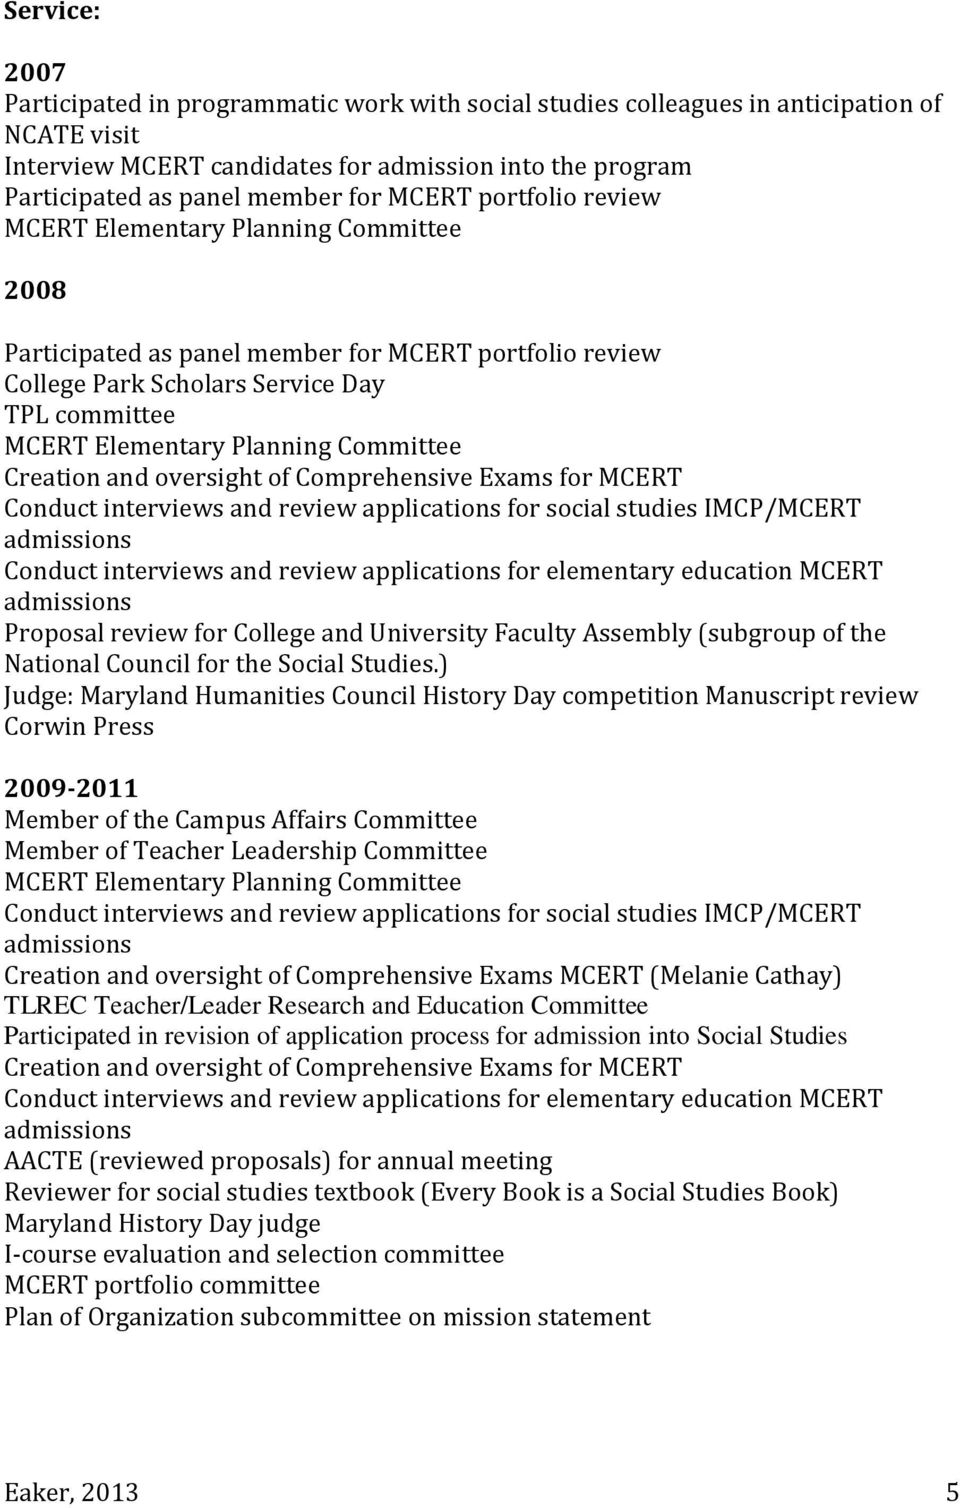 Committee Creation and oversight of Comprehensive Exams for MCERT Conduct interviews and review applications for social studies IMCP/MCERT Conduct interviews and review applications for elementary